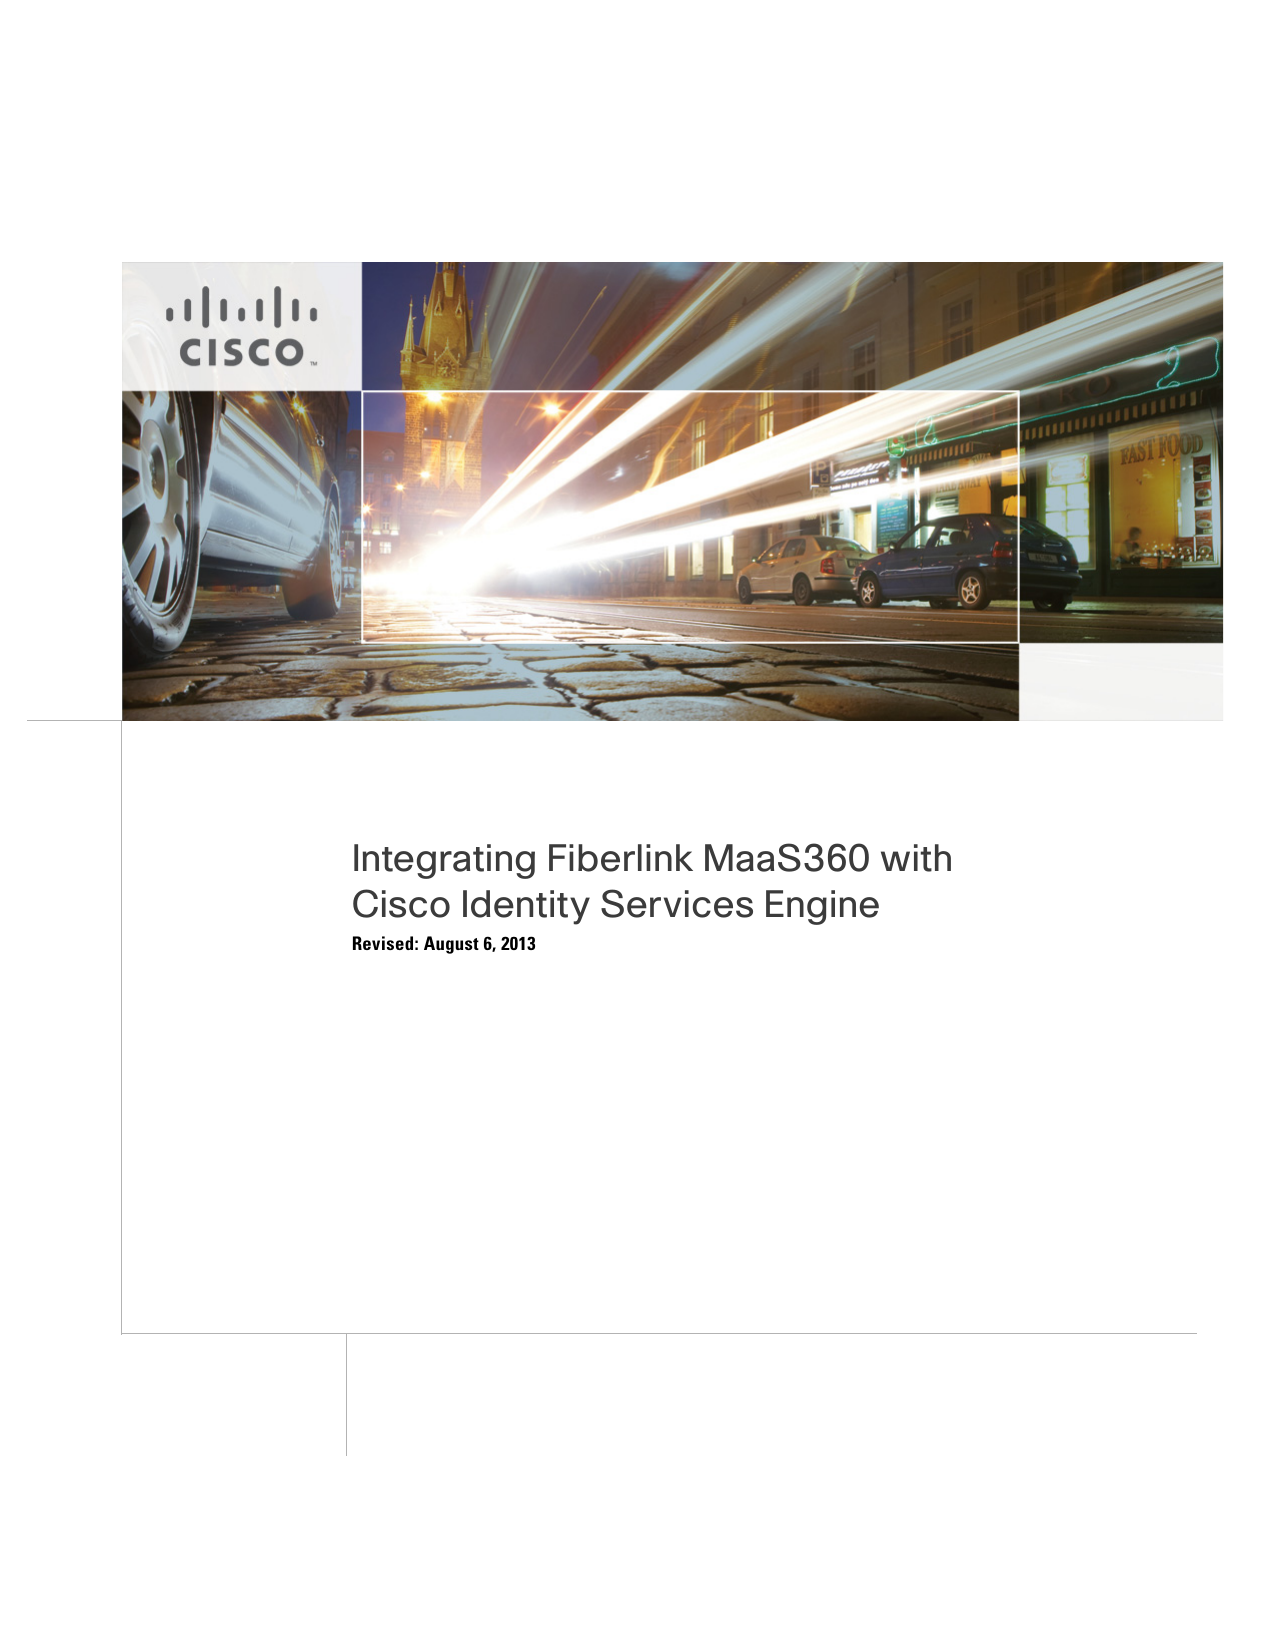 Integrating Fiberlink MaaS360 with Cisco Identity Services